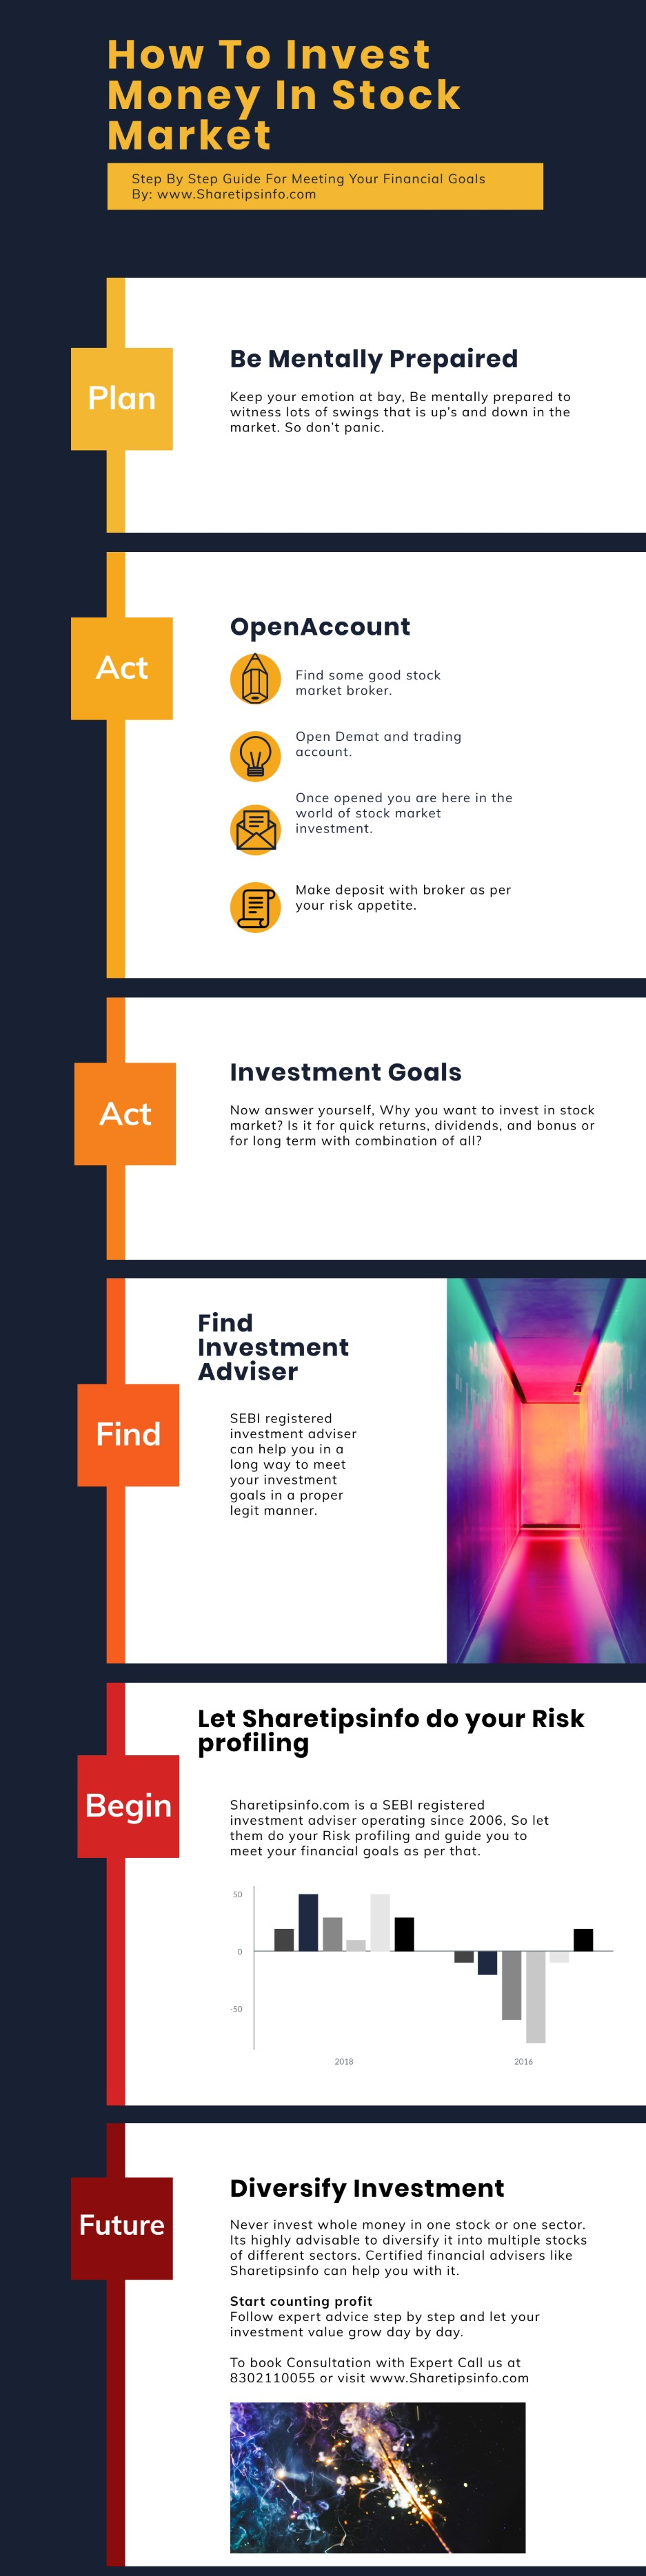 how-to-invest-stock-market